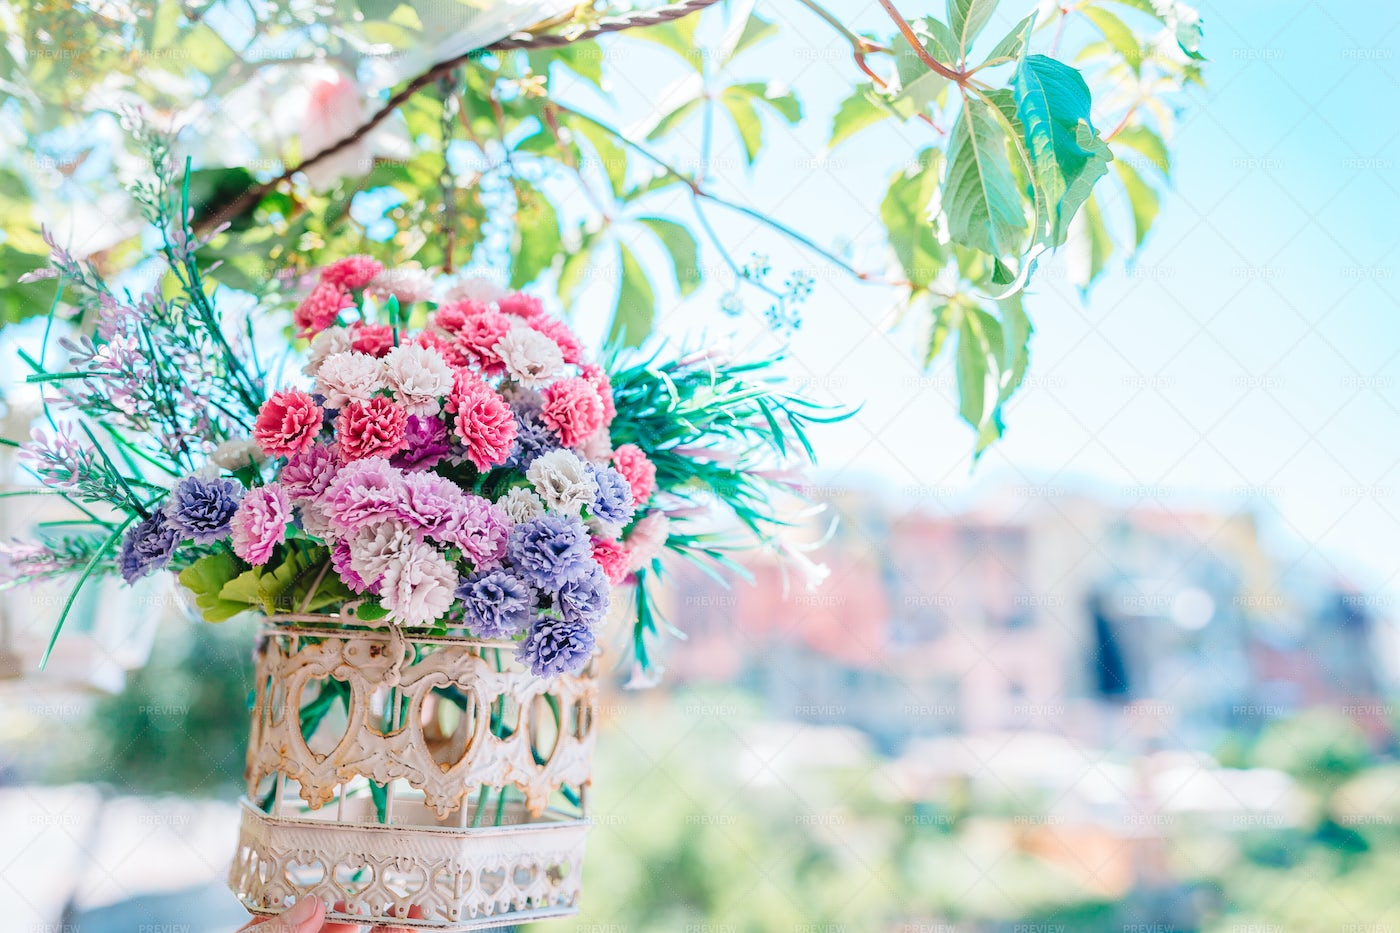 Flowers Hang From A Tree: Stock Photos